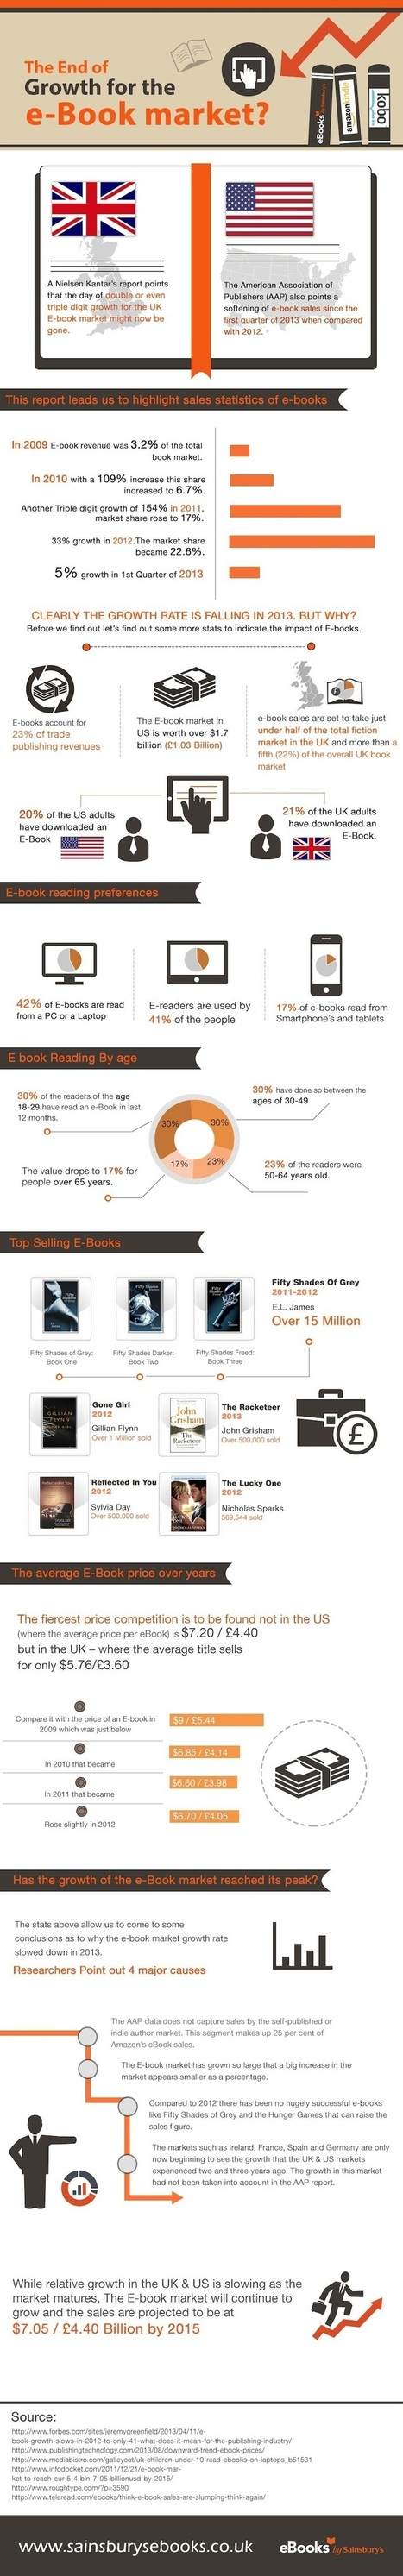 US and UK ebook markets are slowing down (infographic) | Communication & Social Media Marketing | Scoop.it